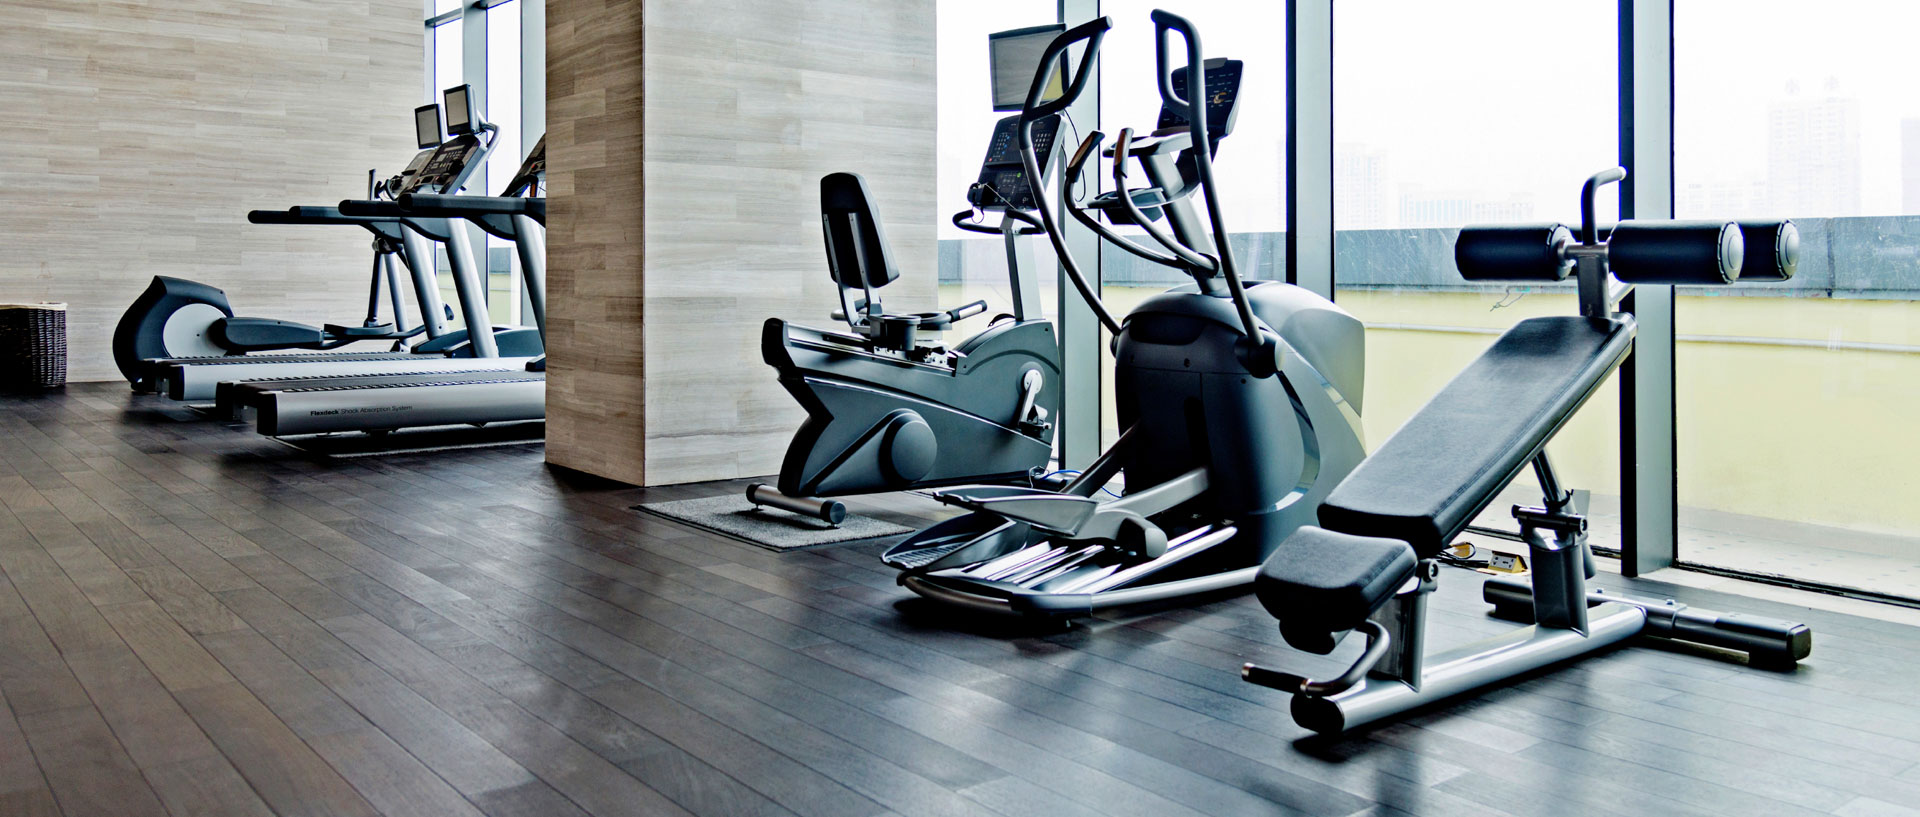 Redefine Your Fitness Level By Owning Exercise Equipment Right At Home!